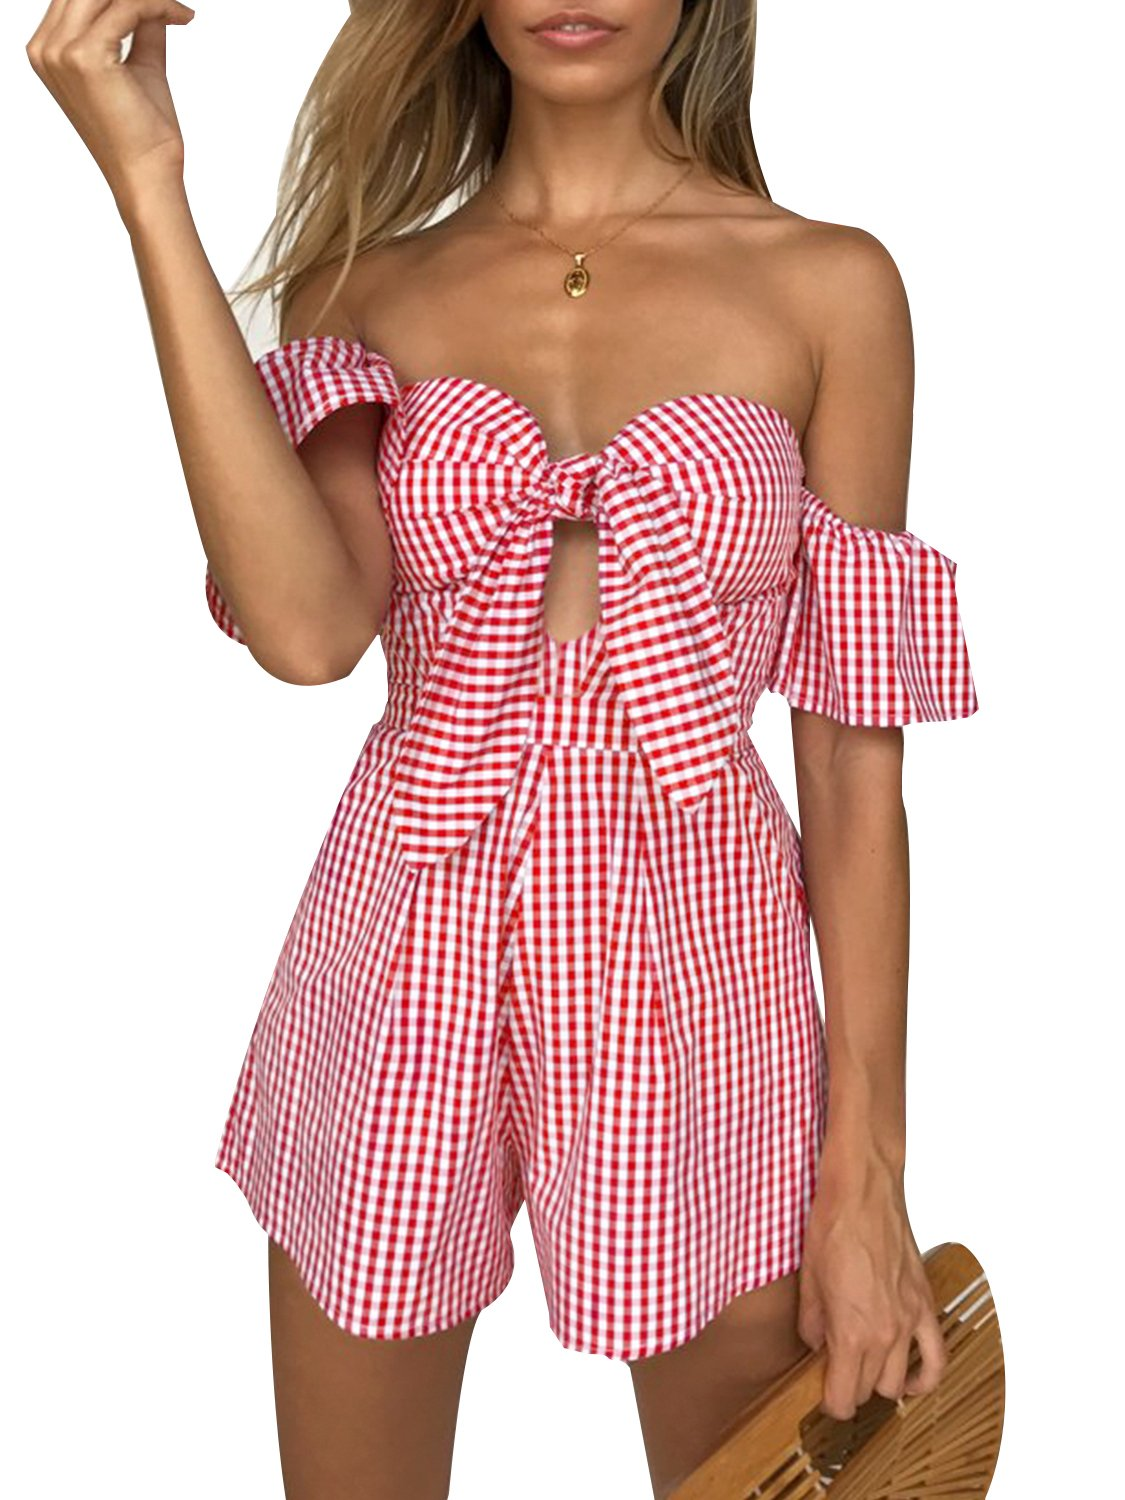 BerryGo Women's Sexy Off Shoulder Romper Plaid Bow Short Jumpsuit Playsuit Summer